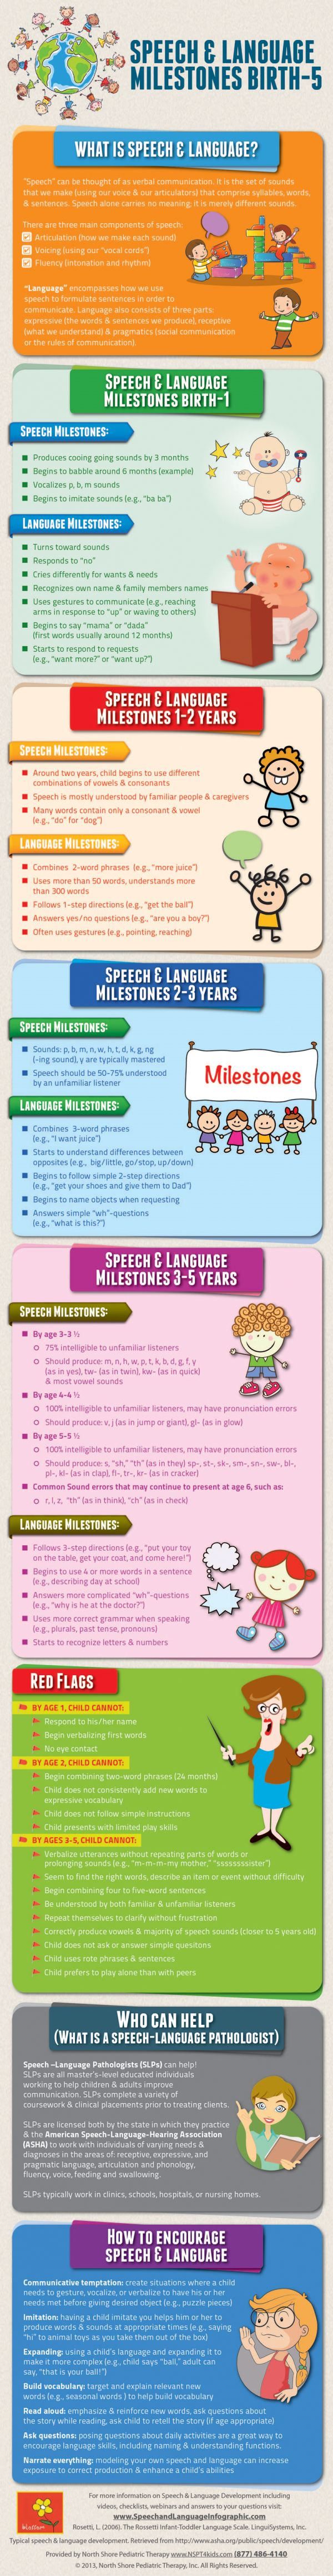 Use this as a quick guide to check your child's speech progress, should you have a concern. Source: http://info.nspt4kids.com/speech-and-language-milestones-infographic-?&t=6630